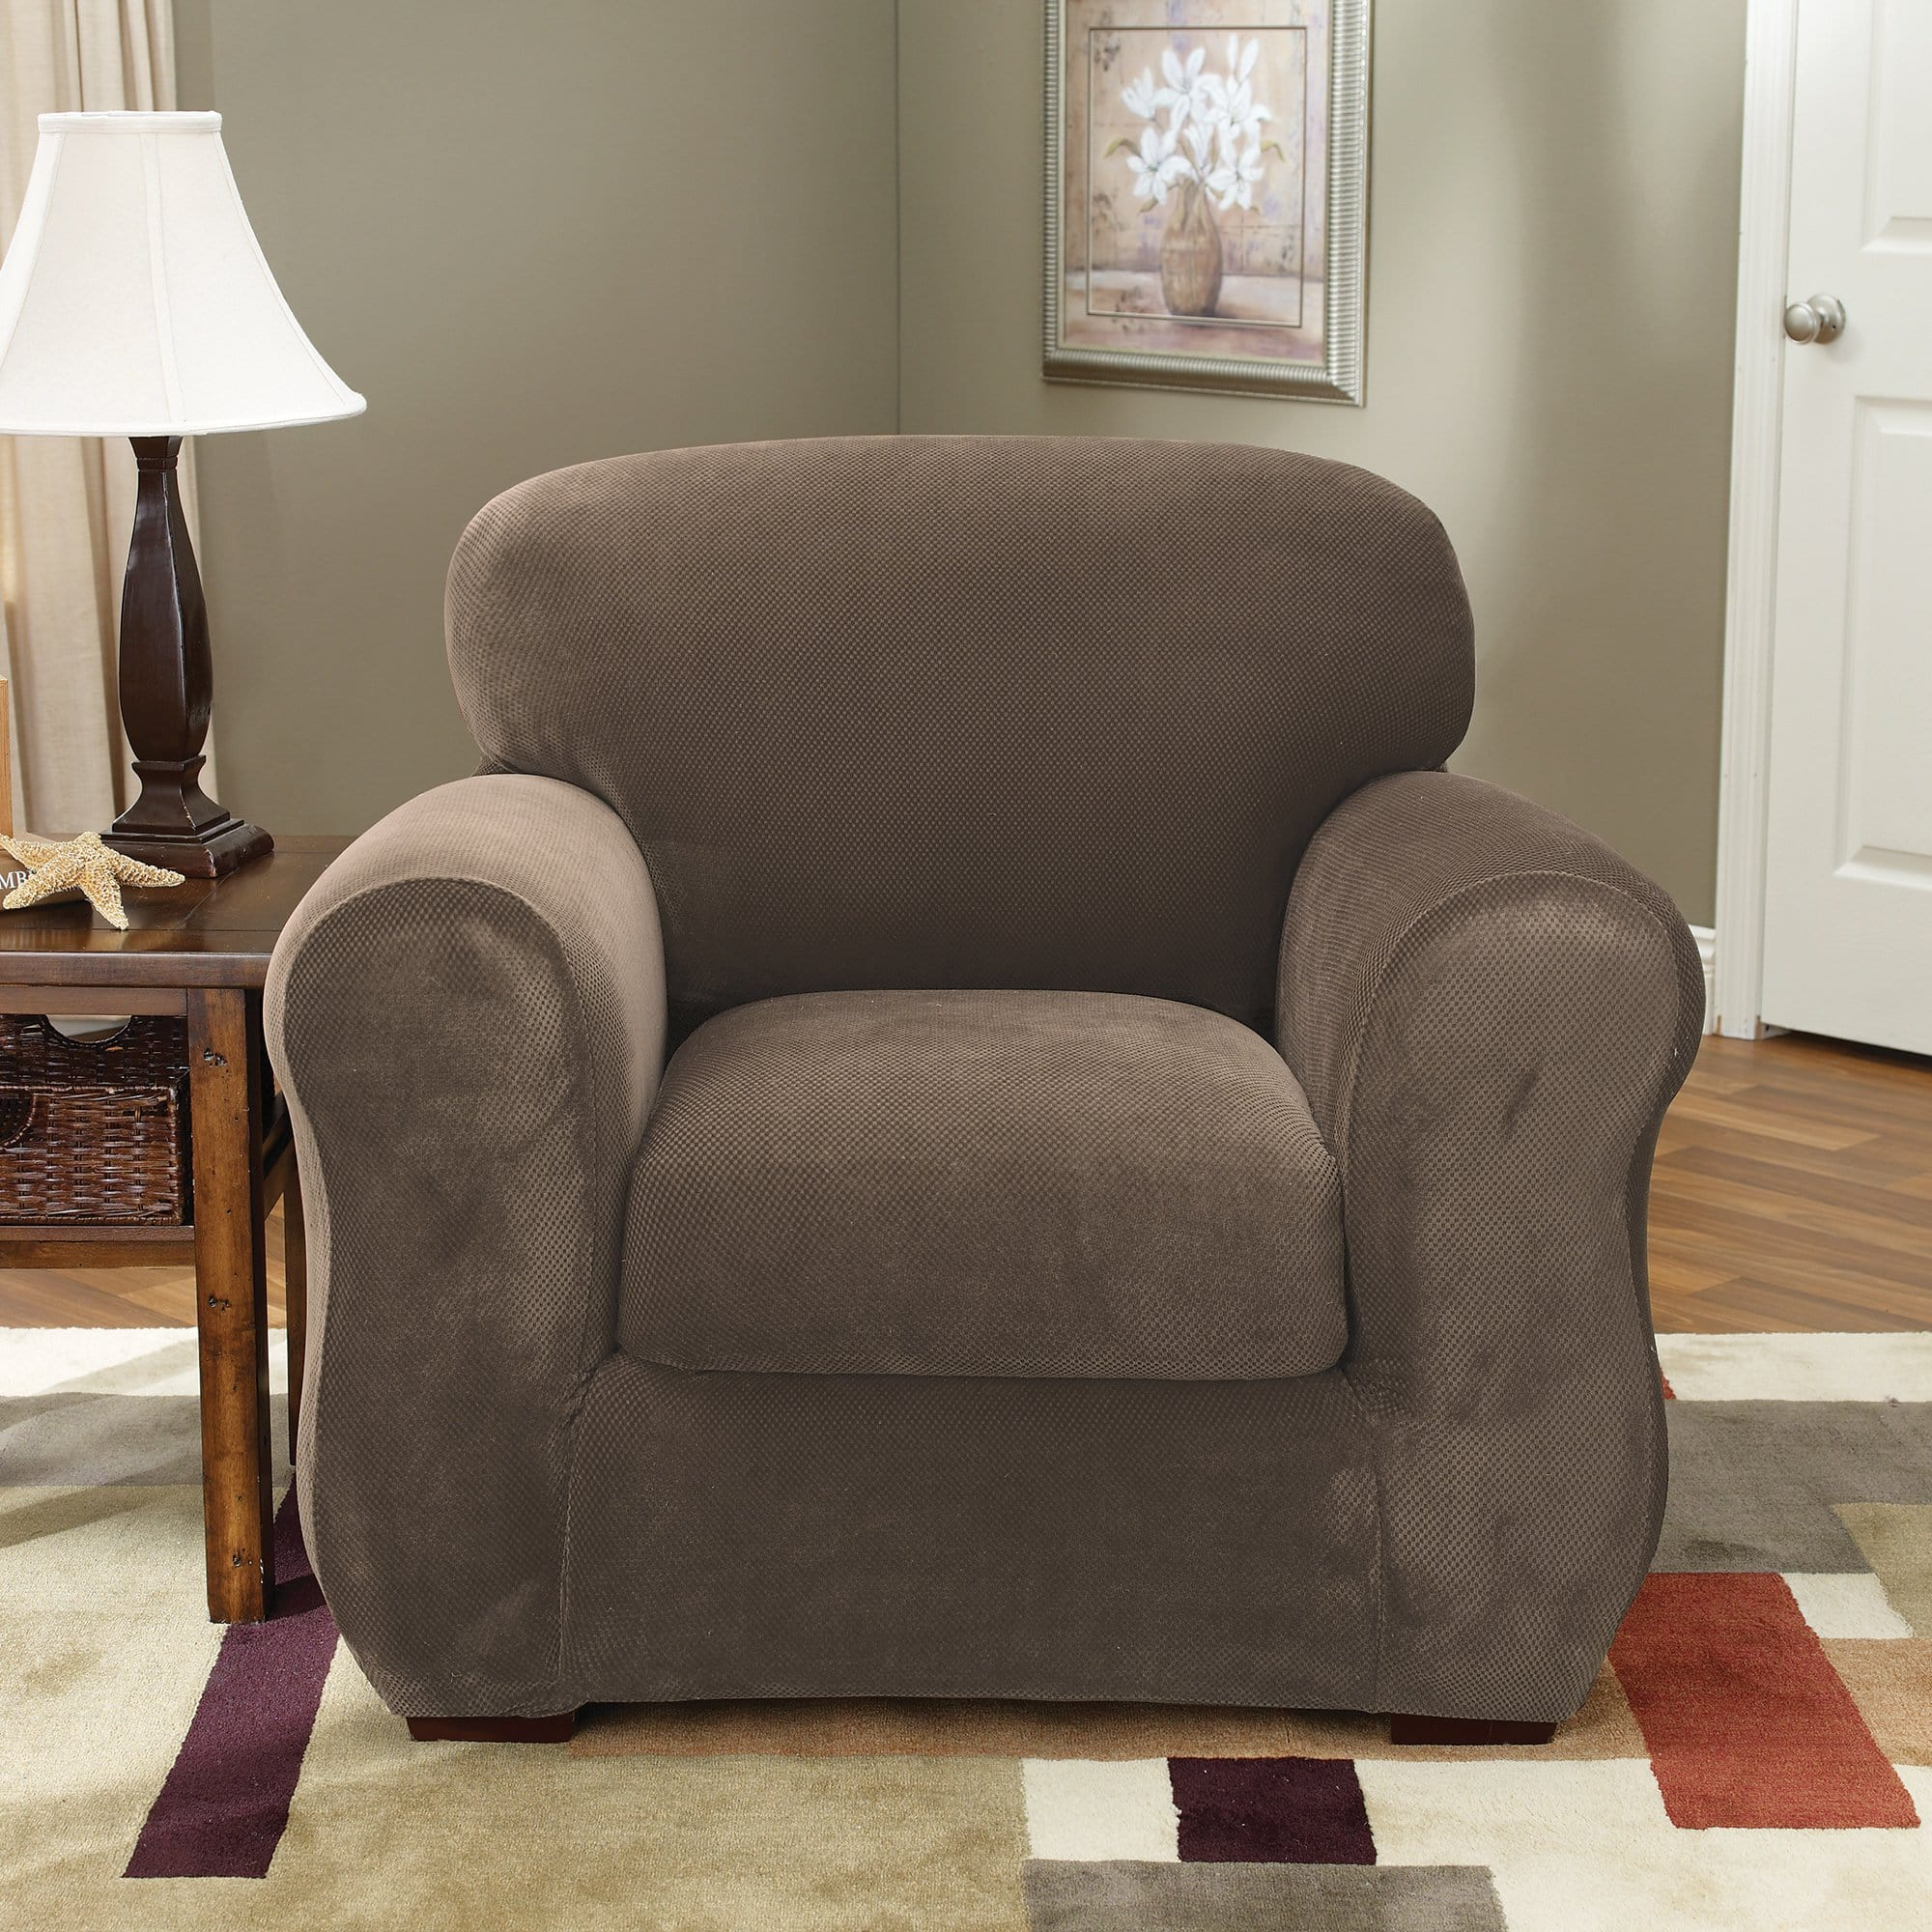 Stretch Pique Two Piece Chair Slipcover Slipcovers For Chairs Surefit